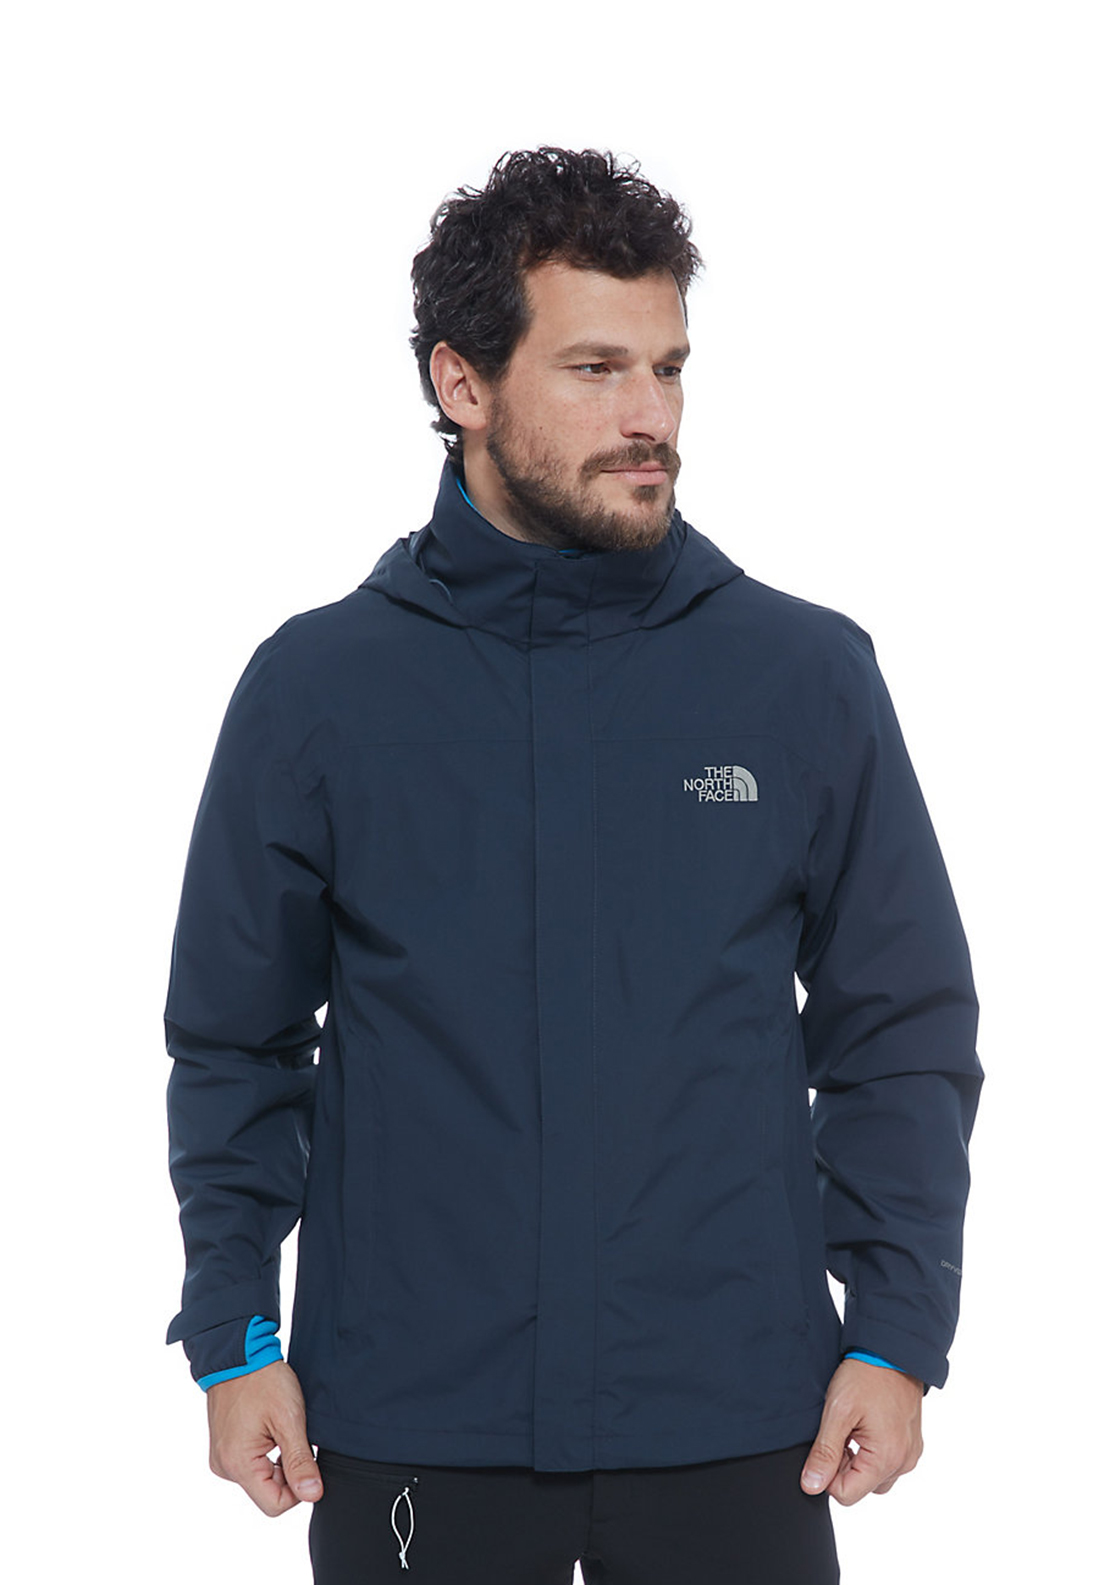 The North Face Mens Sangro Jacket, Navy